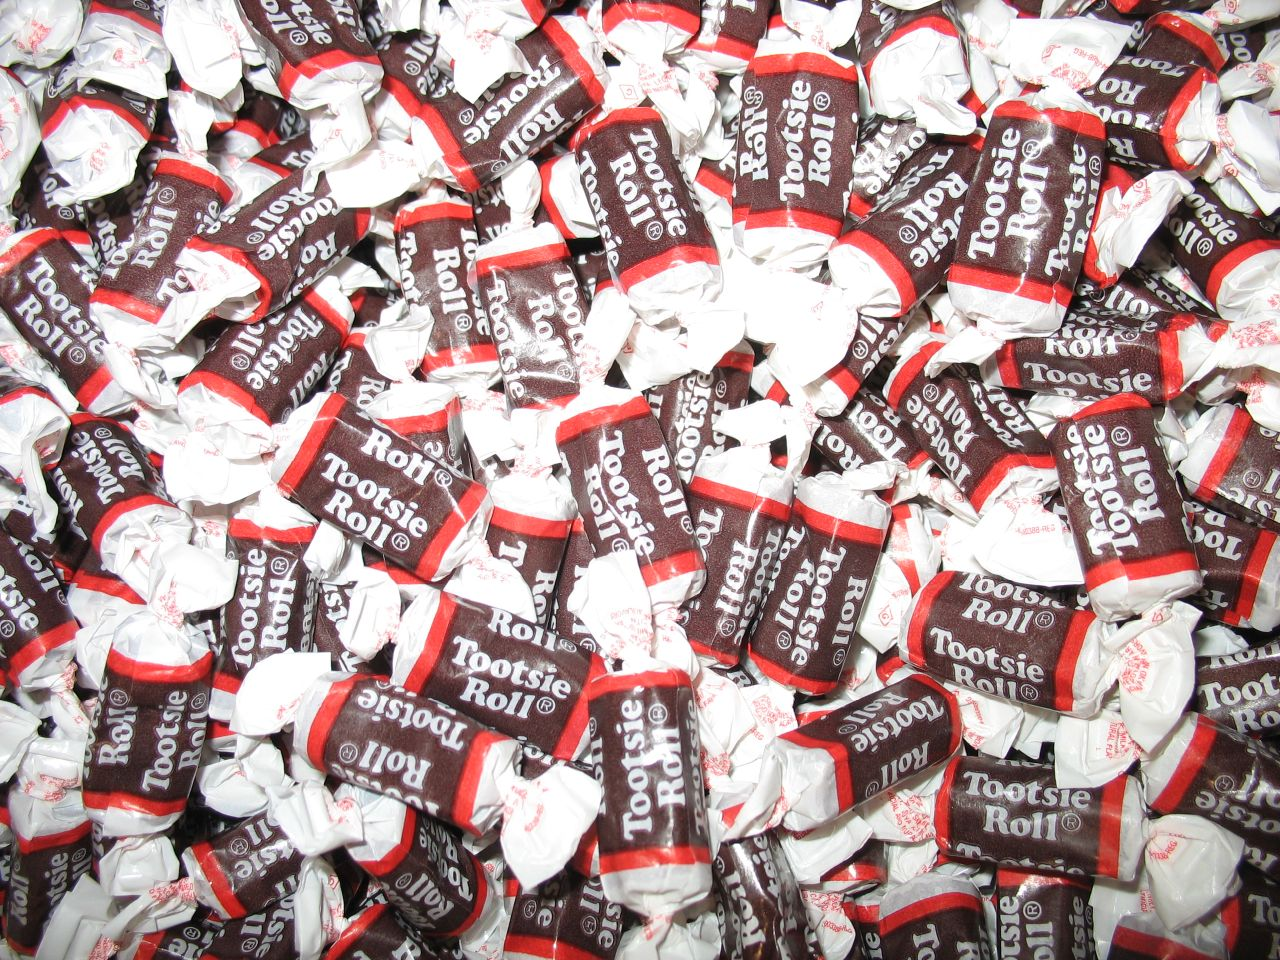 Tootsie Rolls - An Iconic Package makes an iconic brand